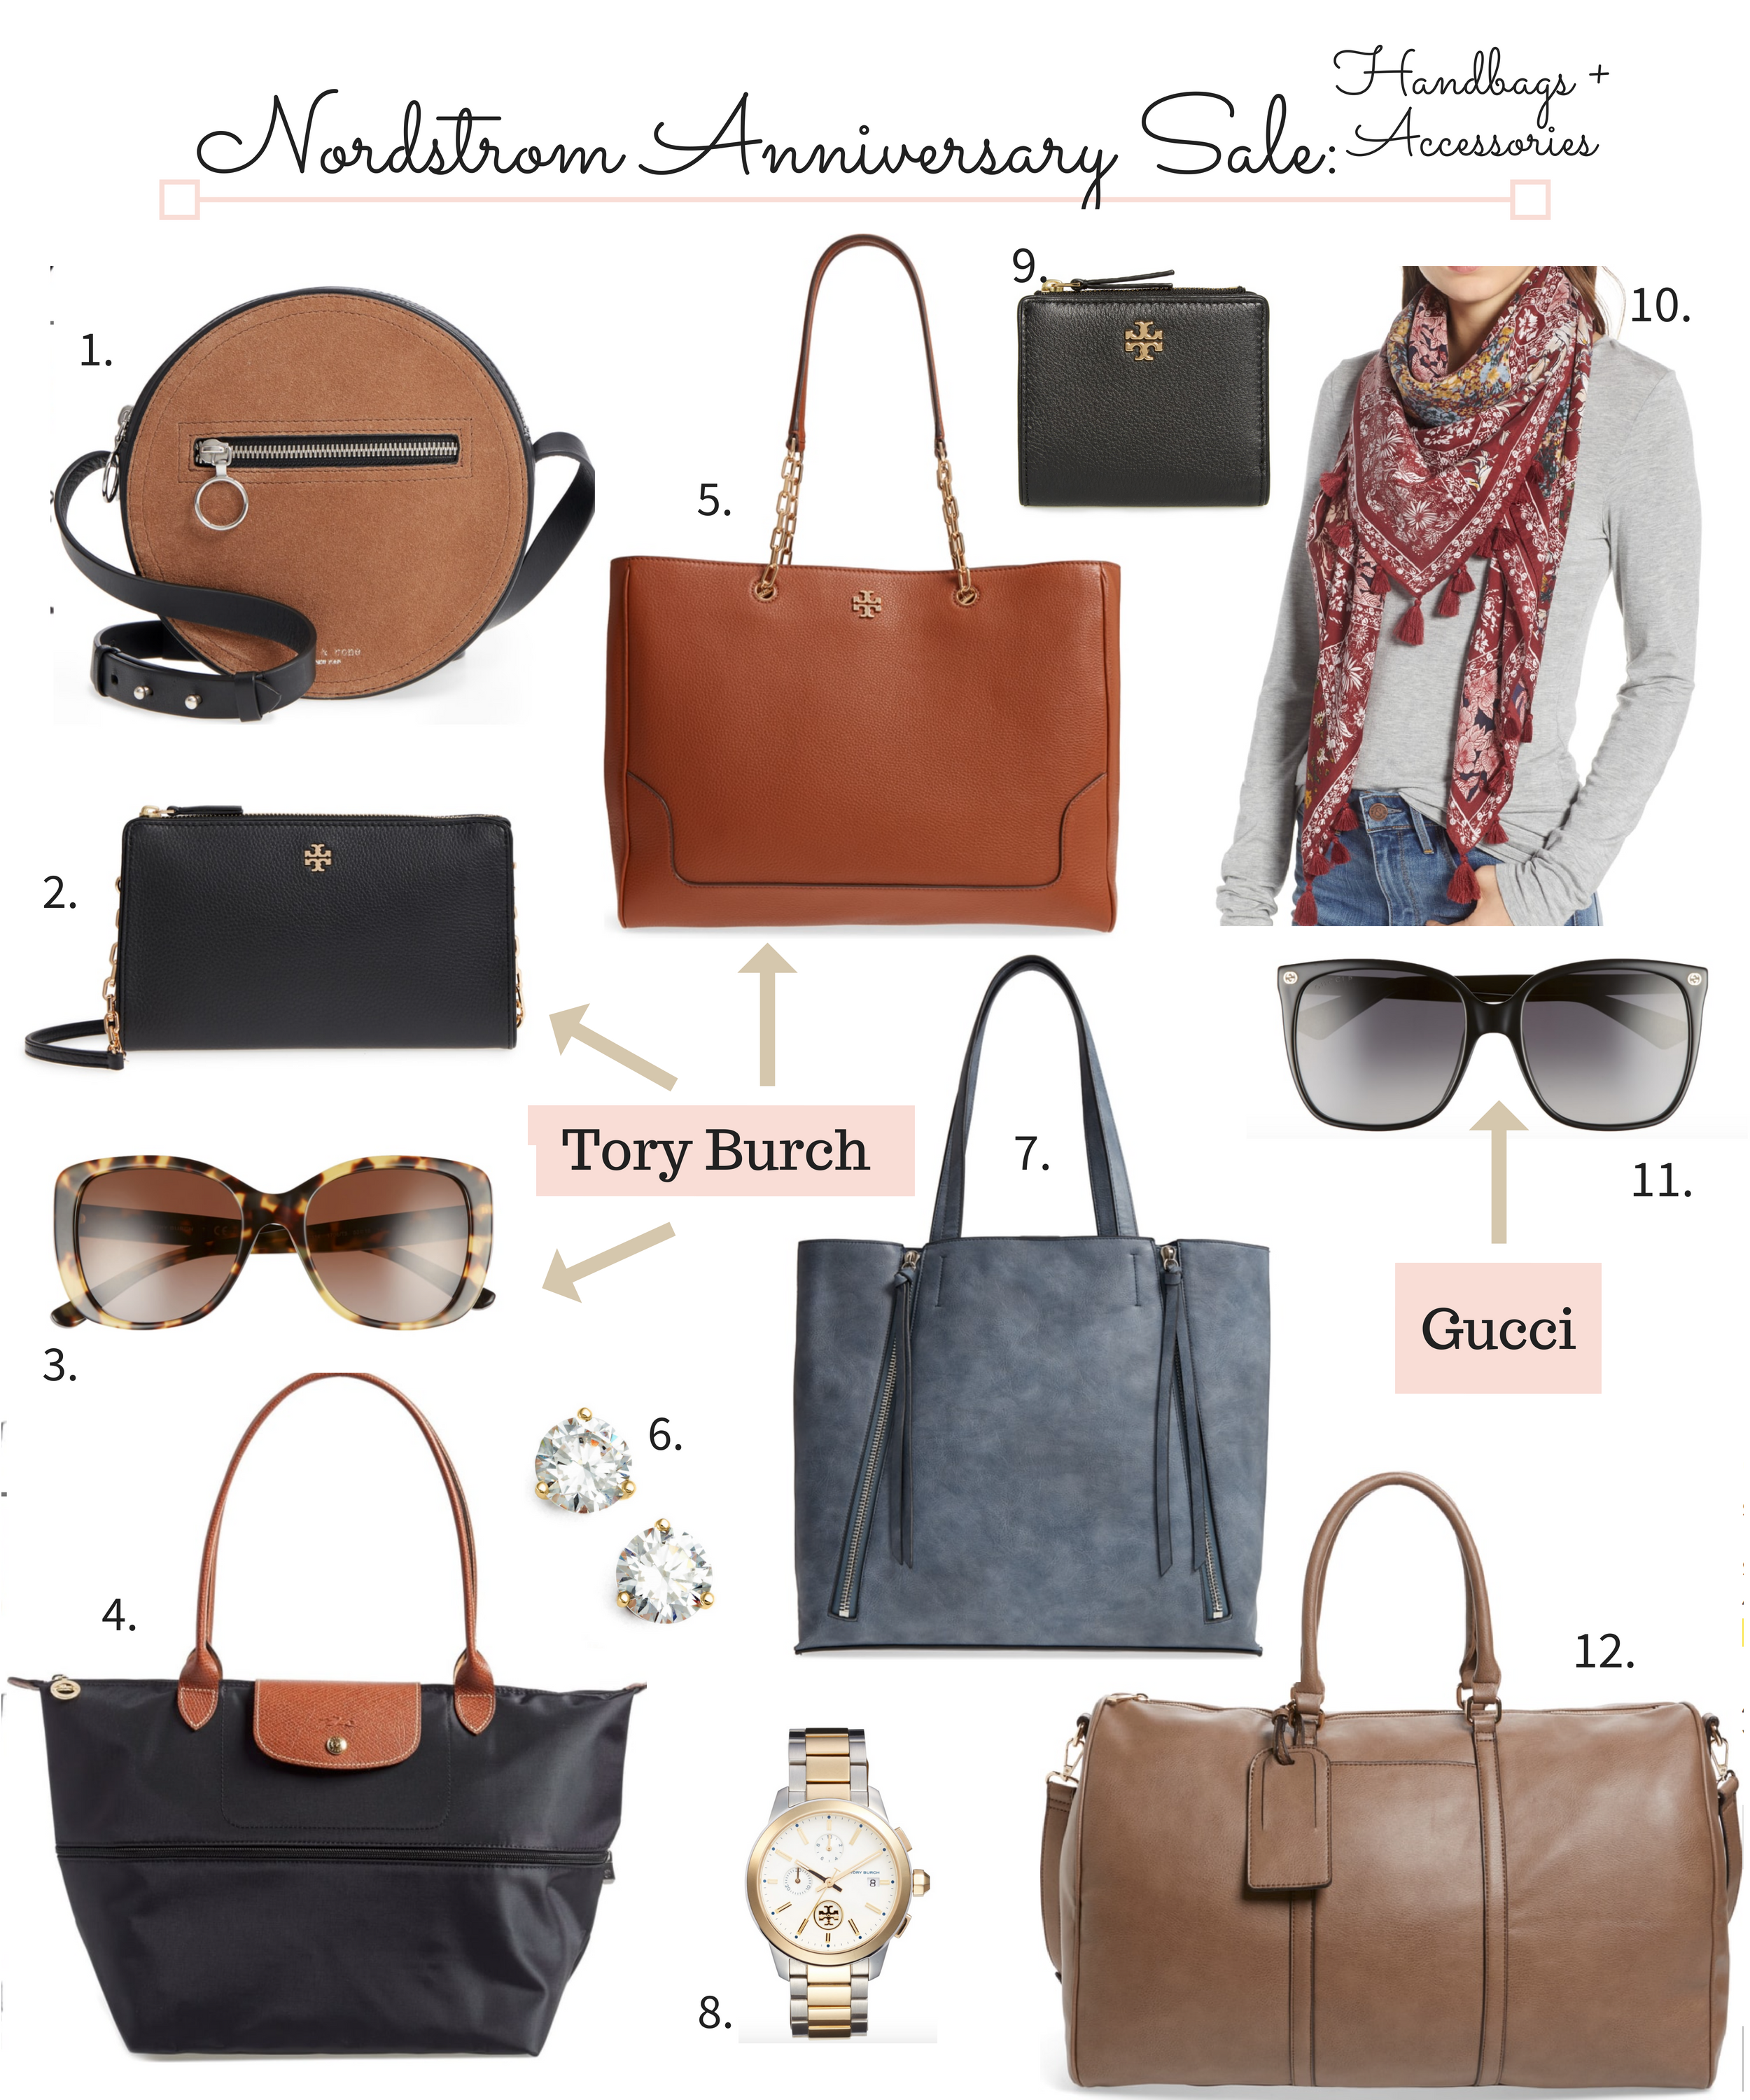 Nordstrom Anniversary Sale 2018 handbags and accessories